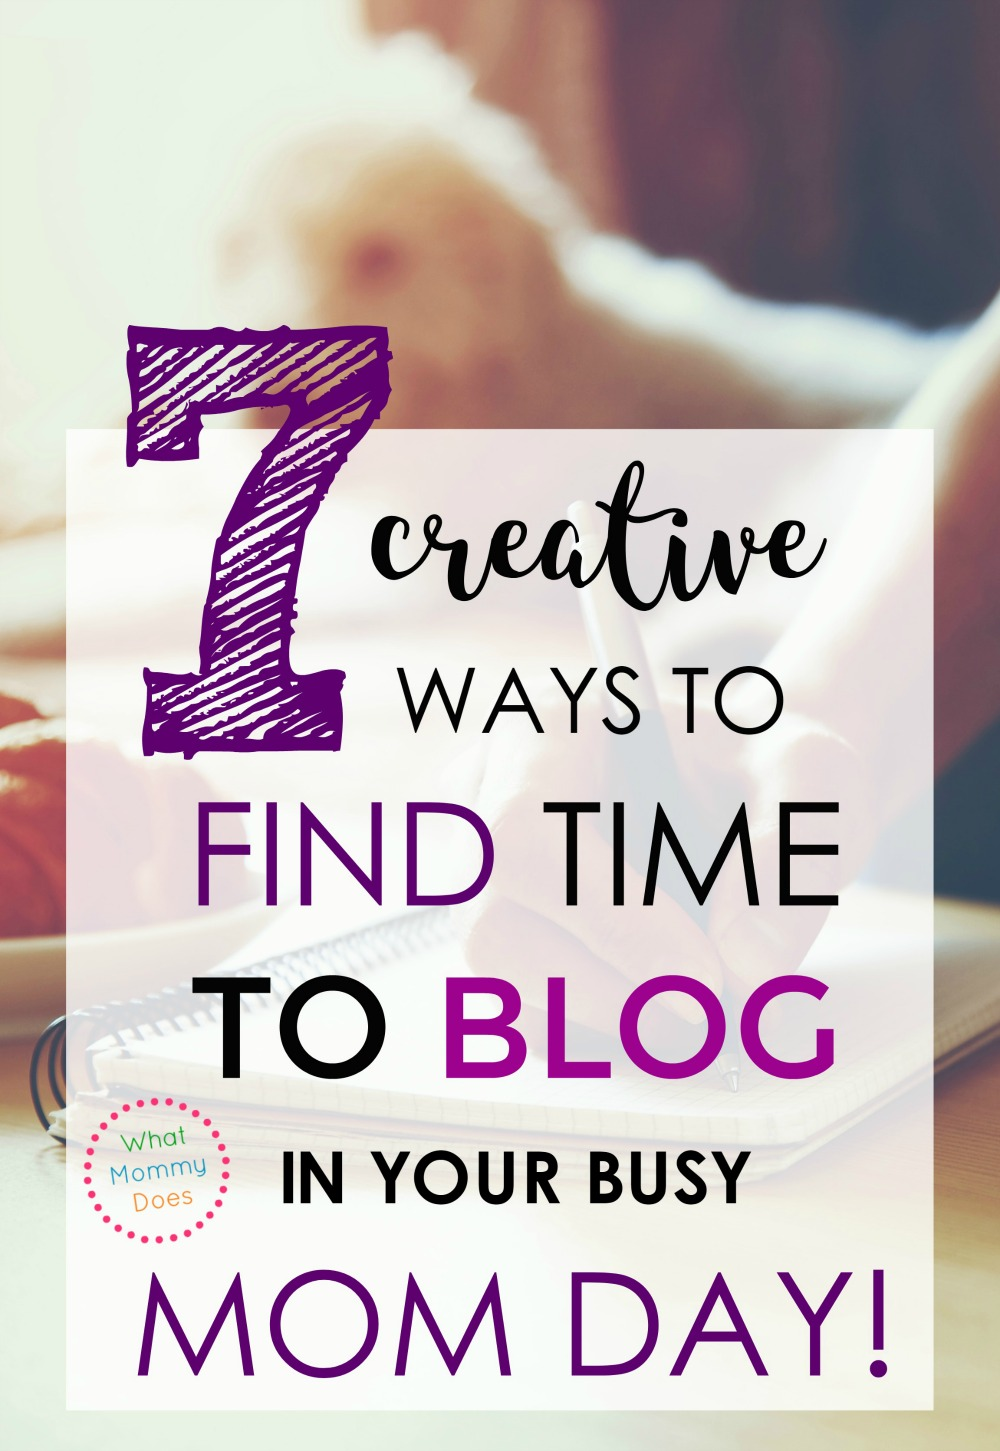 Starting a blog is only half the battle - finding time to write blog posts, brainstorm content, answer emails, is another! Thie mom has amazing blogging tips for beginner bloggers who are moms….she explains how she fits in writing articles into her busy days in a way that makes complete sense! So glad I found this article! I love learning from REAL people who have been where I want to go. | how to start a blog that makes money, grow a blog that makes money online, blog tutorials